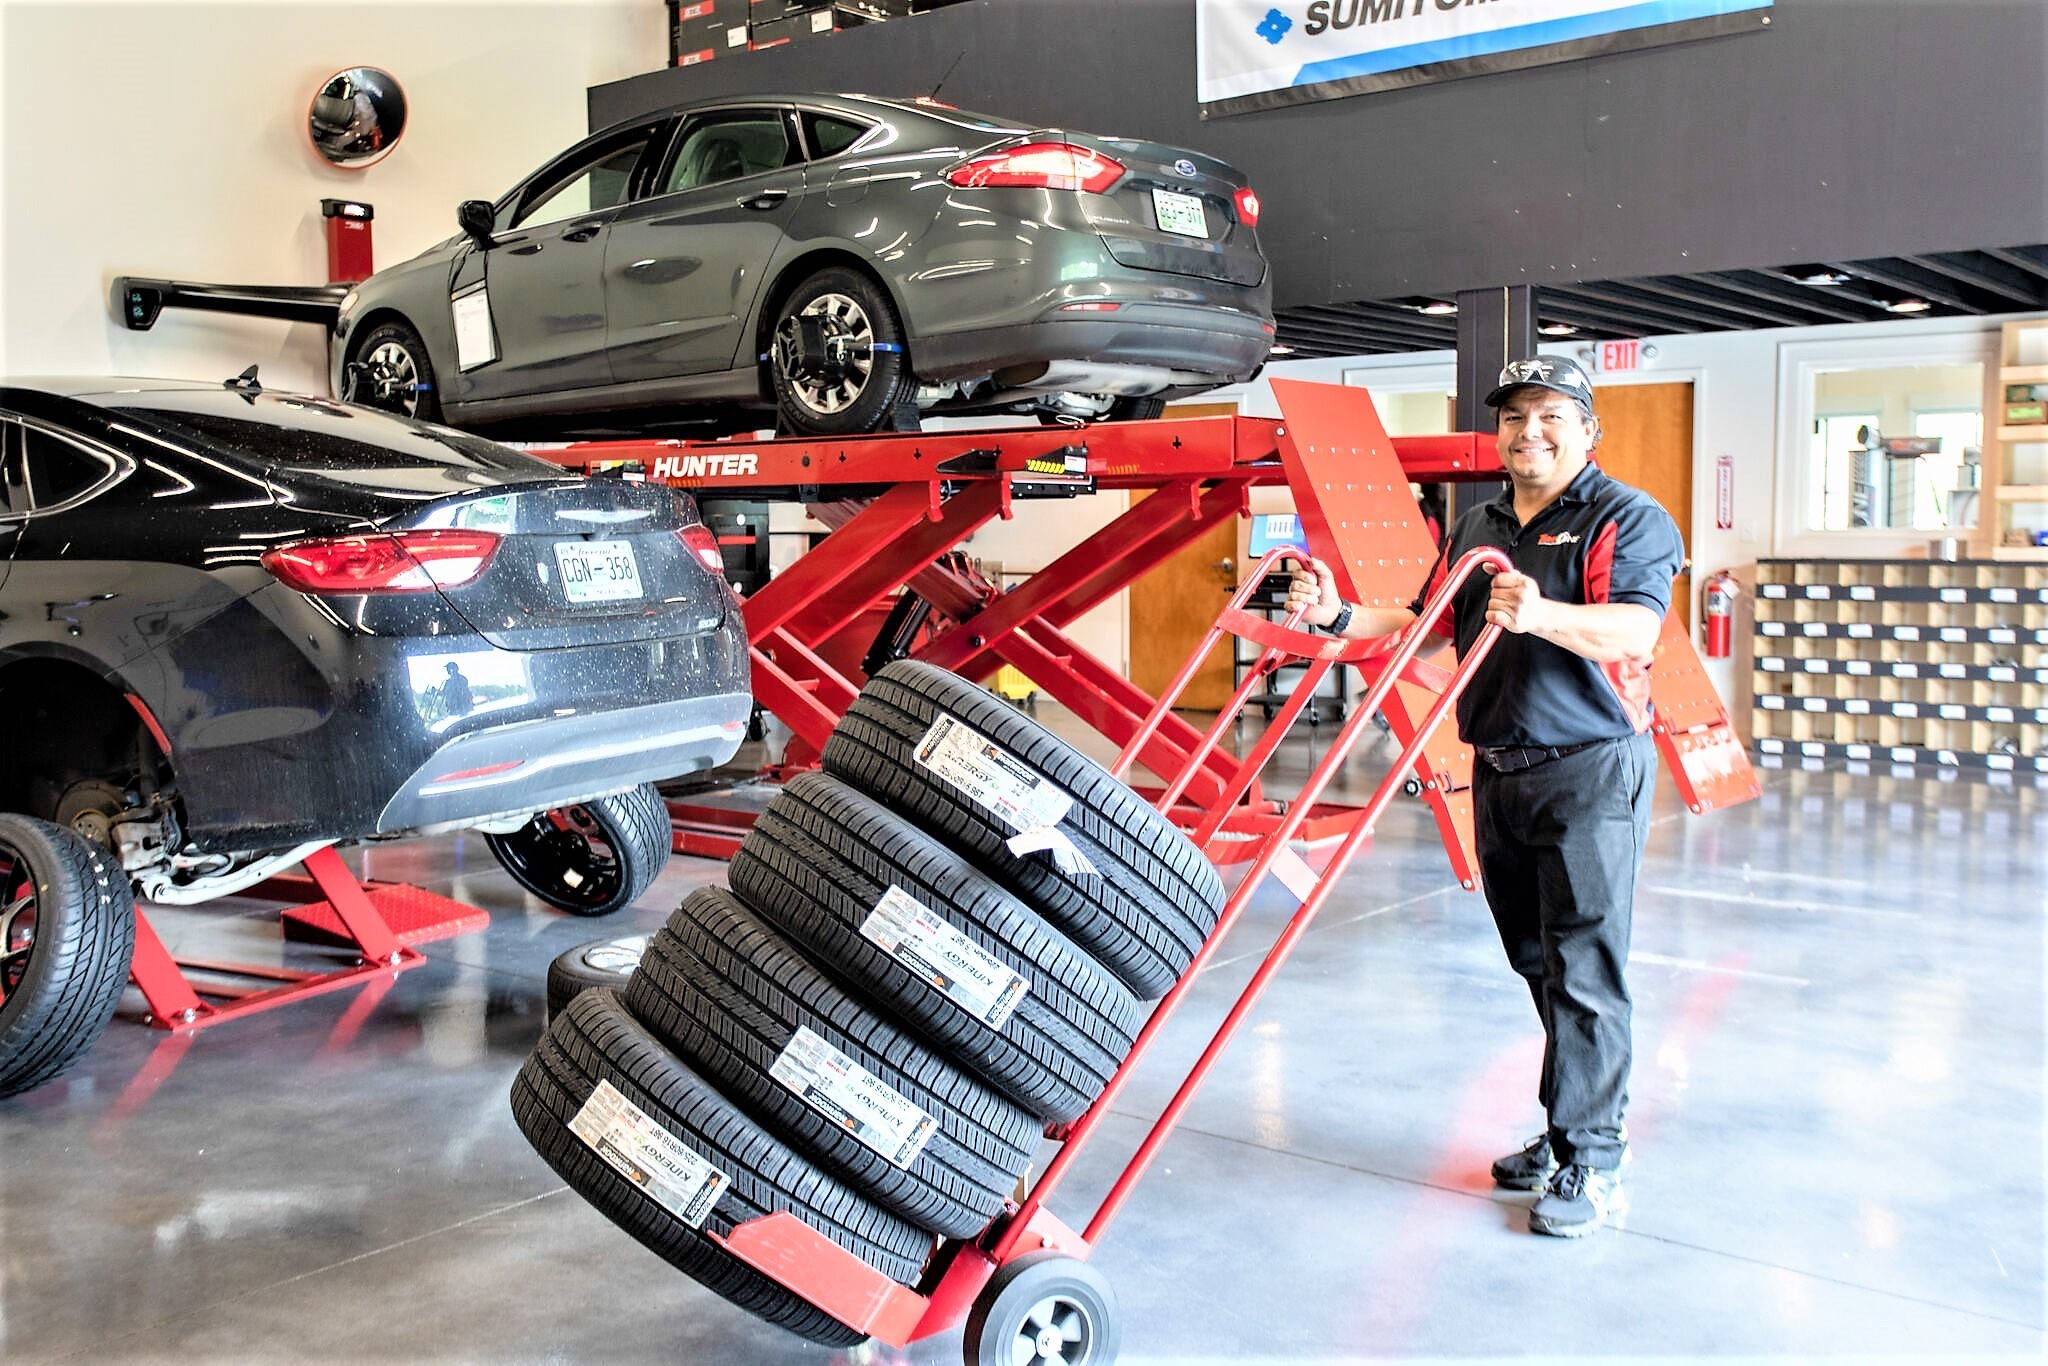 tires shop in nashville TN car battery replacement nashville wheel alignment services nashville tires repair shop nashville tires change nashville tn tire replacement tire rotation in nashville tire services in nashville tn wheel balancing nashville tn tire pressure monitoring system nashville tn car wheels nashville tn tire one nashville